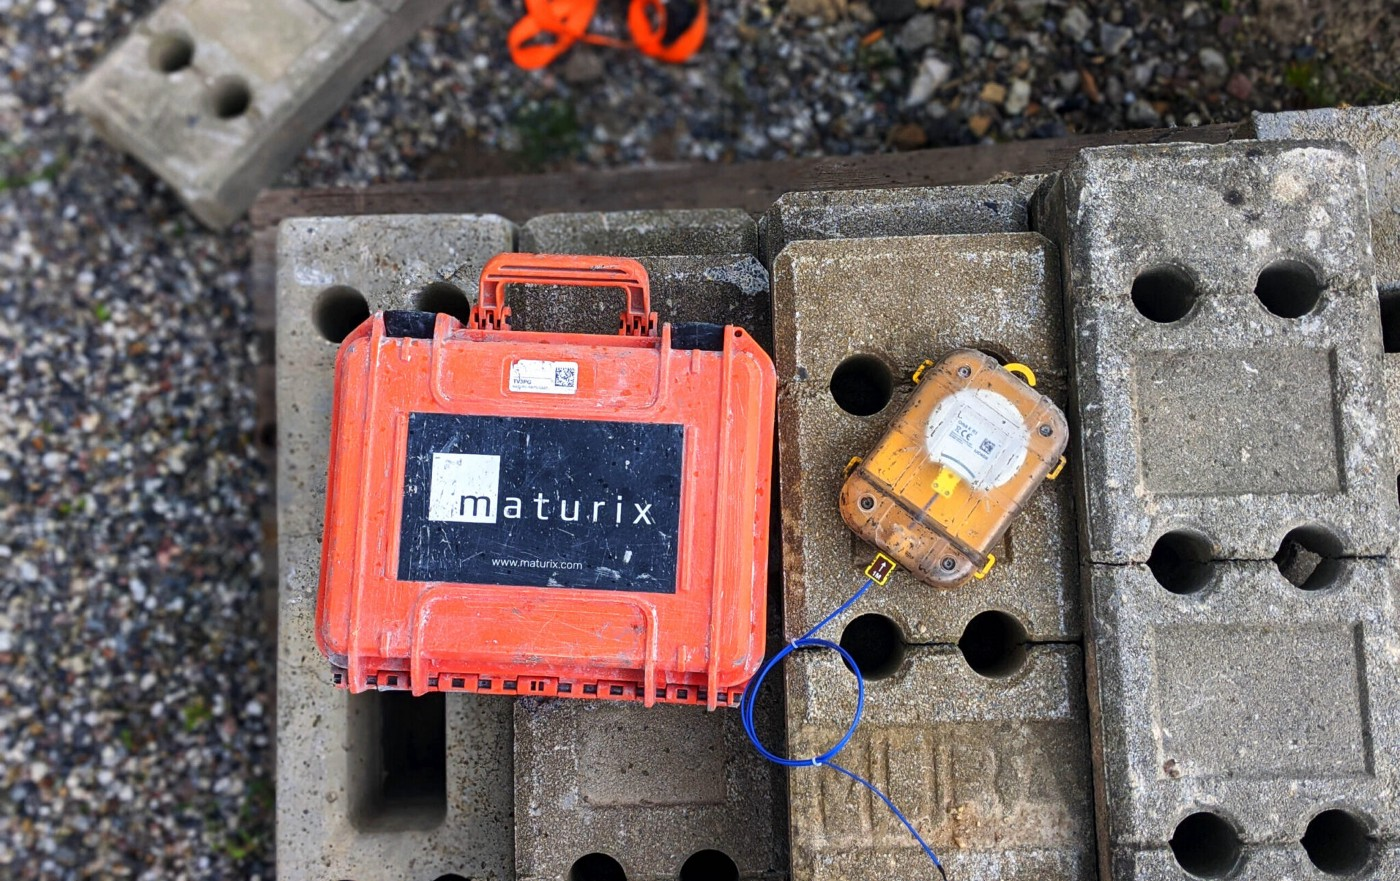 A Maturix Sensor and its case are laying next to each other on concrete blocks in a worksite.